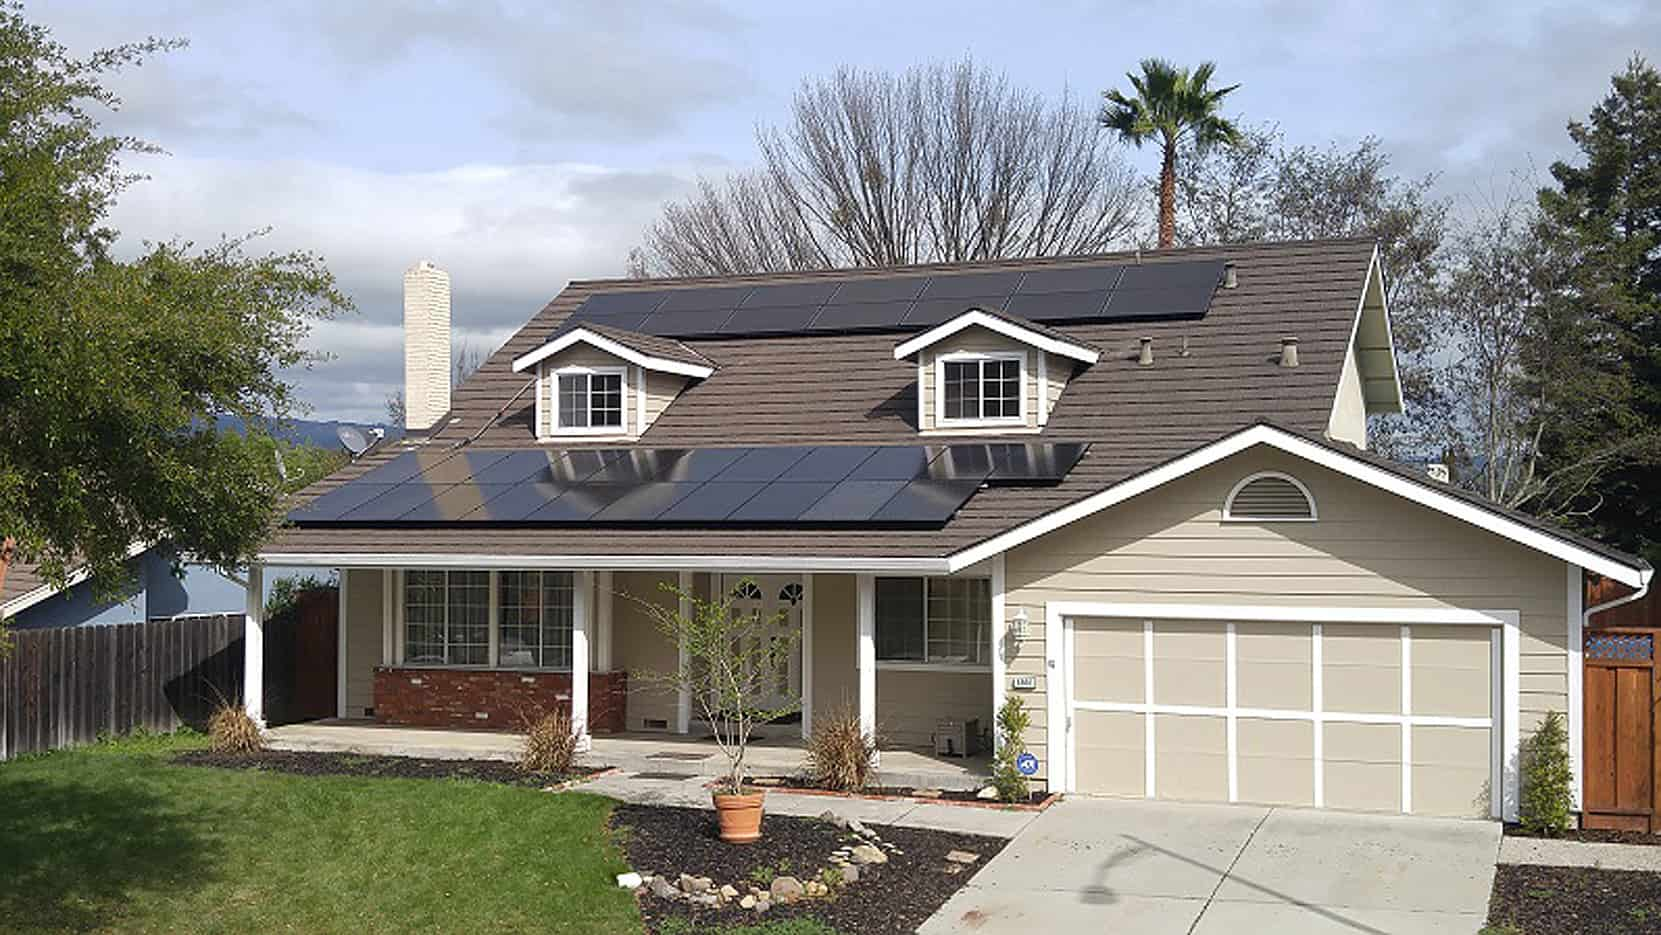 Rooftop solar installation in Gilroy, CA by Michael & Sun Solar.